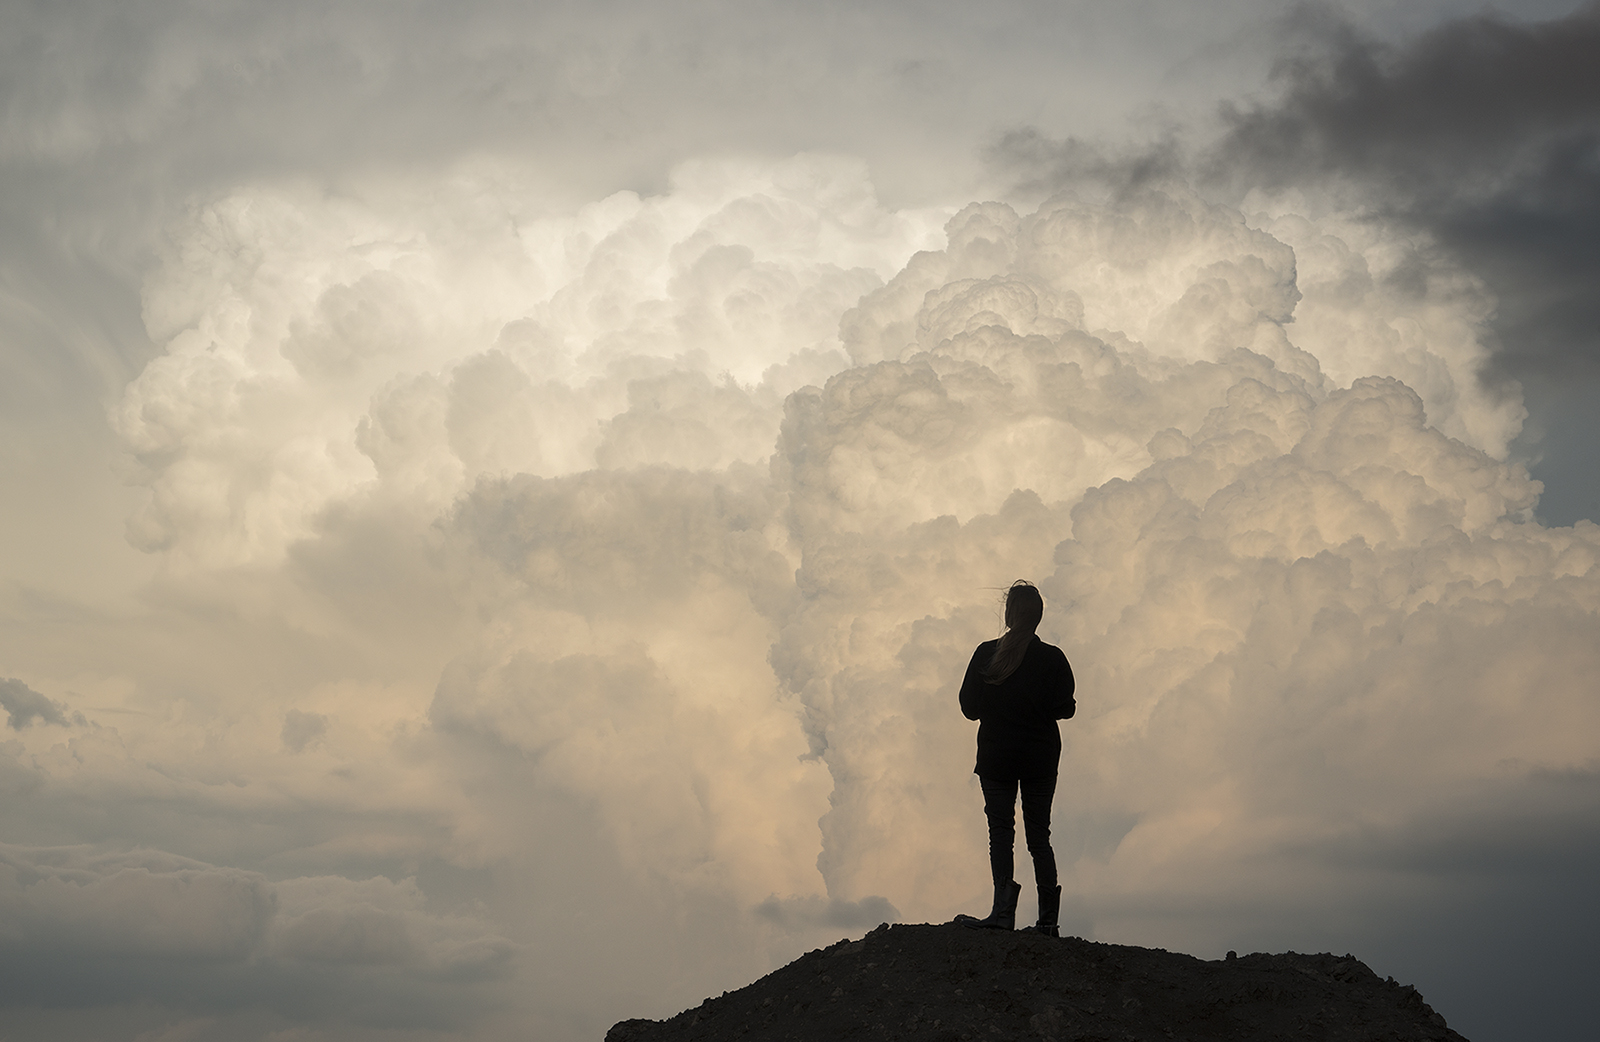 A woman in silhouette watches a picturesque storm from atop a hill.